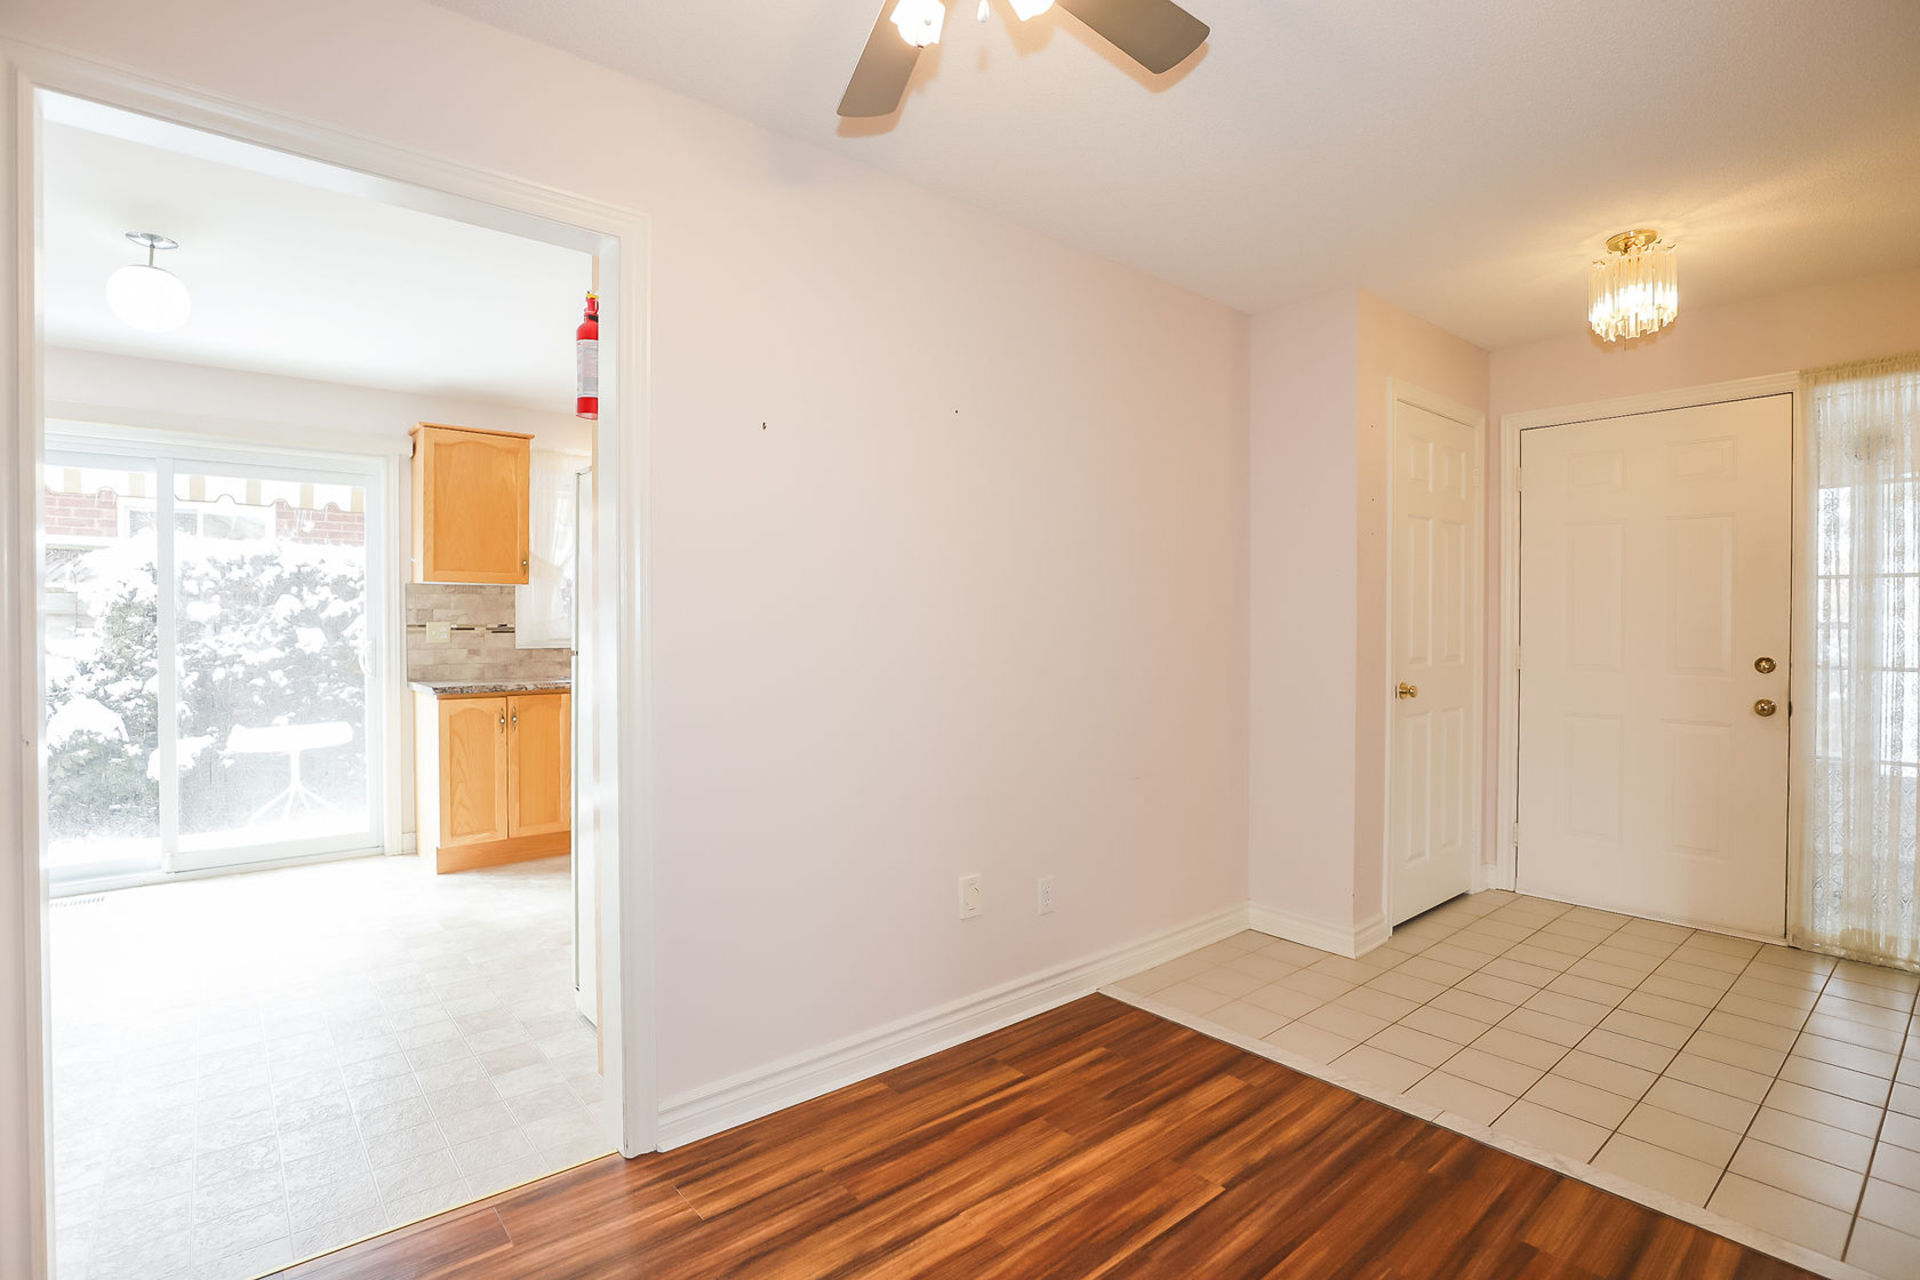 virtual-tour-292122-08-1 at 47 Colonial Cresent, Grimsby